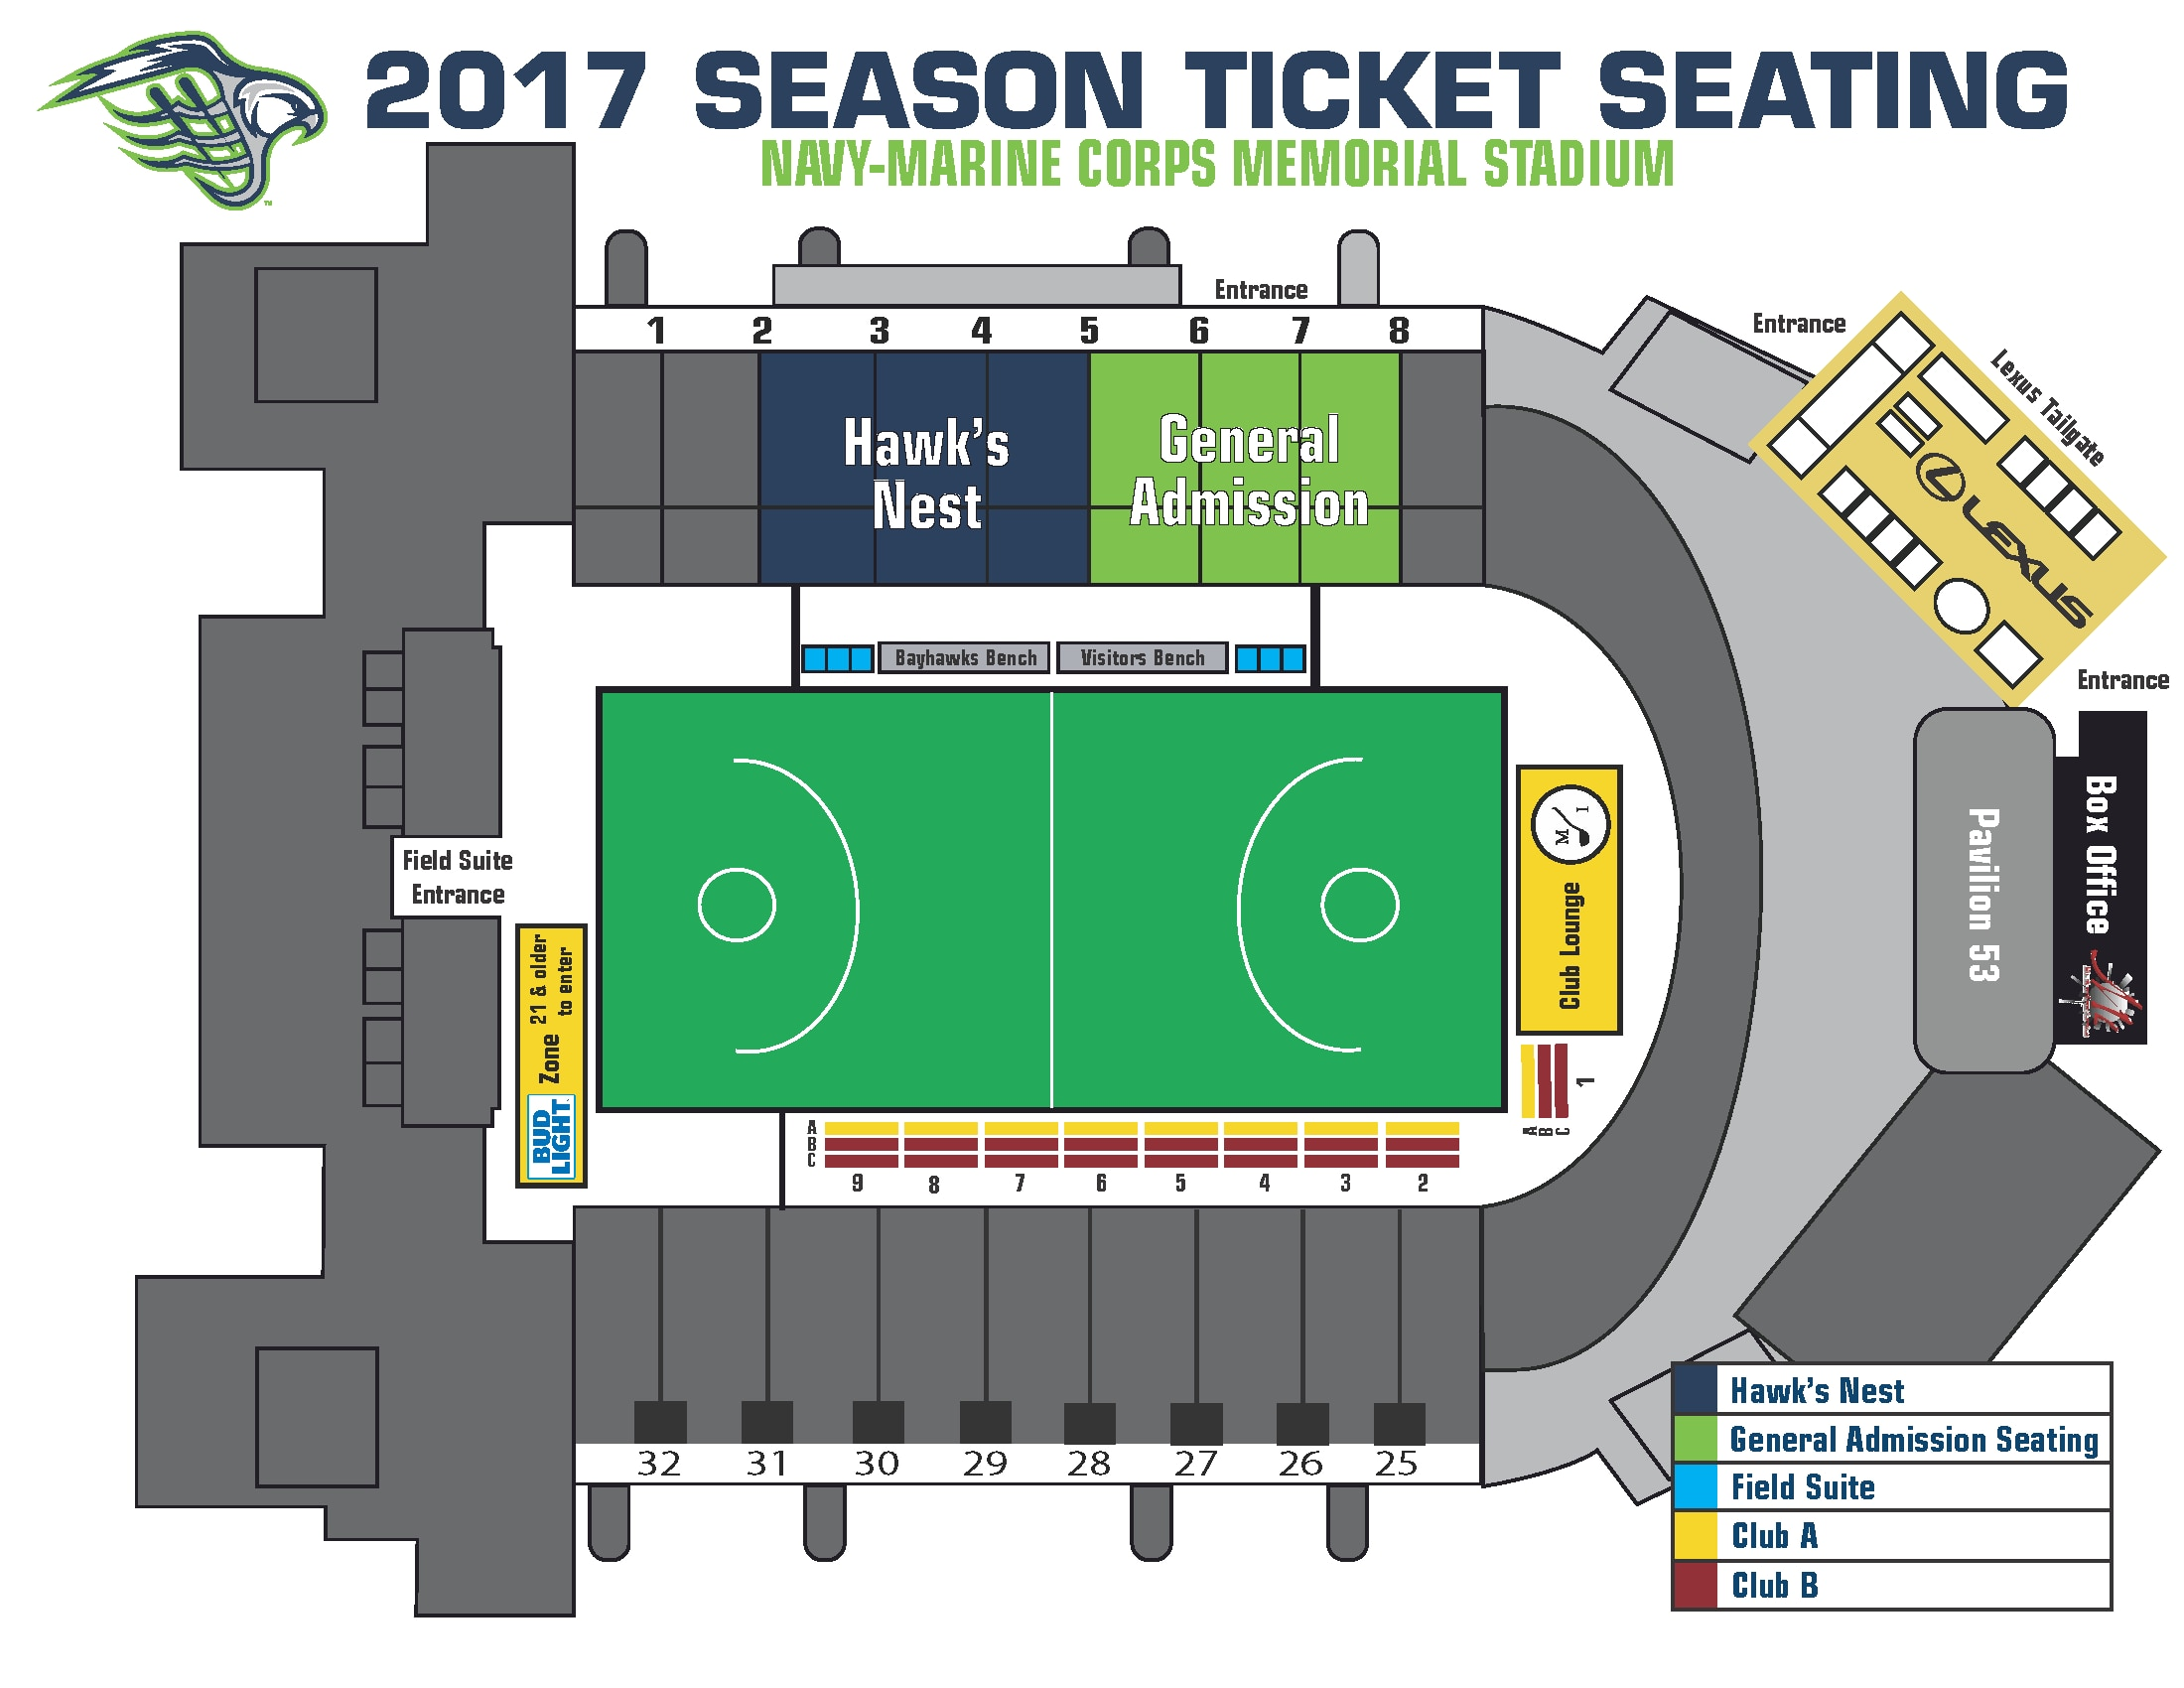 Please contact the Bayhawks Ticket fice for more details on seating location and private suites at 866 99 HAWKS